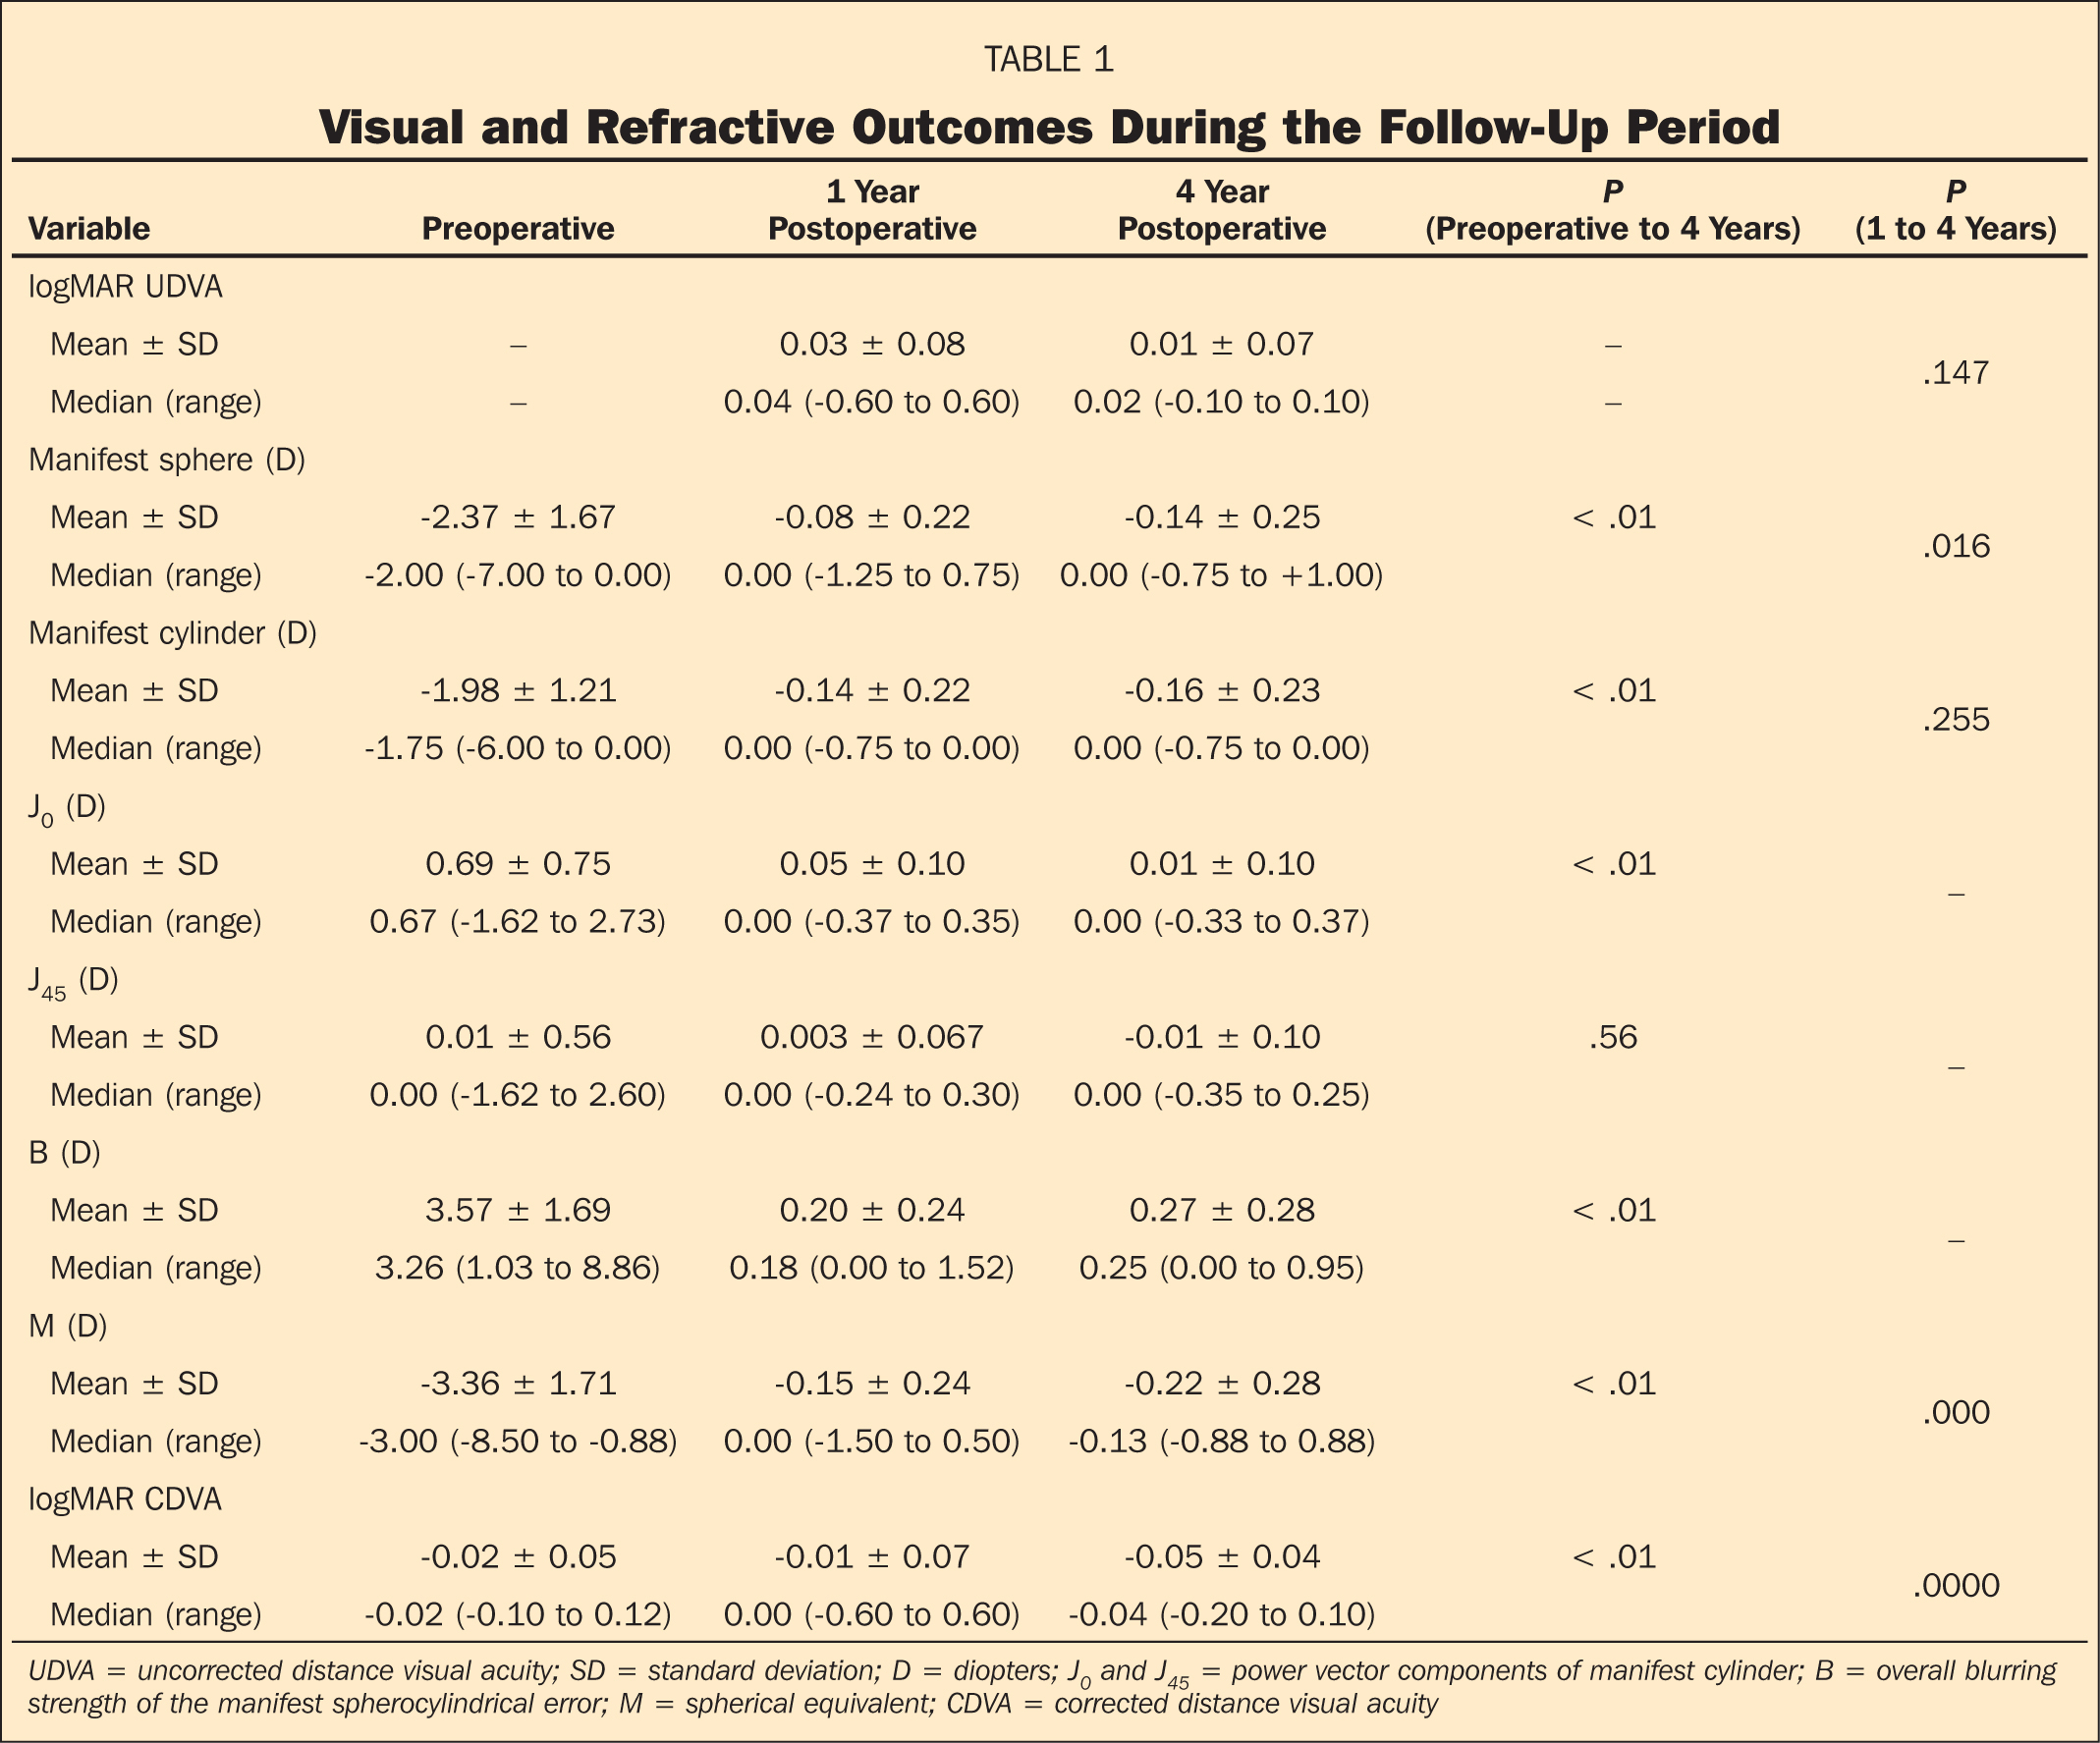 Visual and Refractive Outcomes During the Follow-Up Period